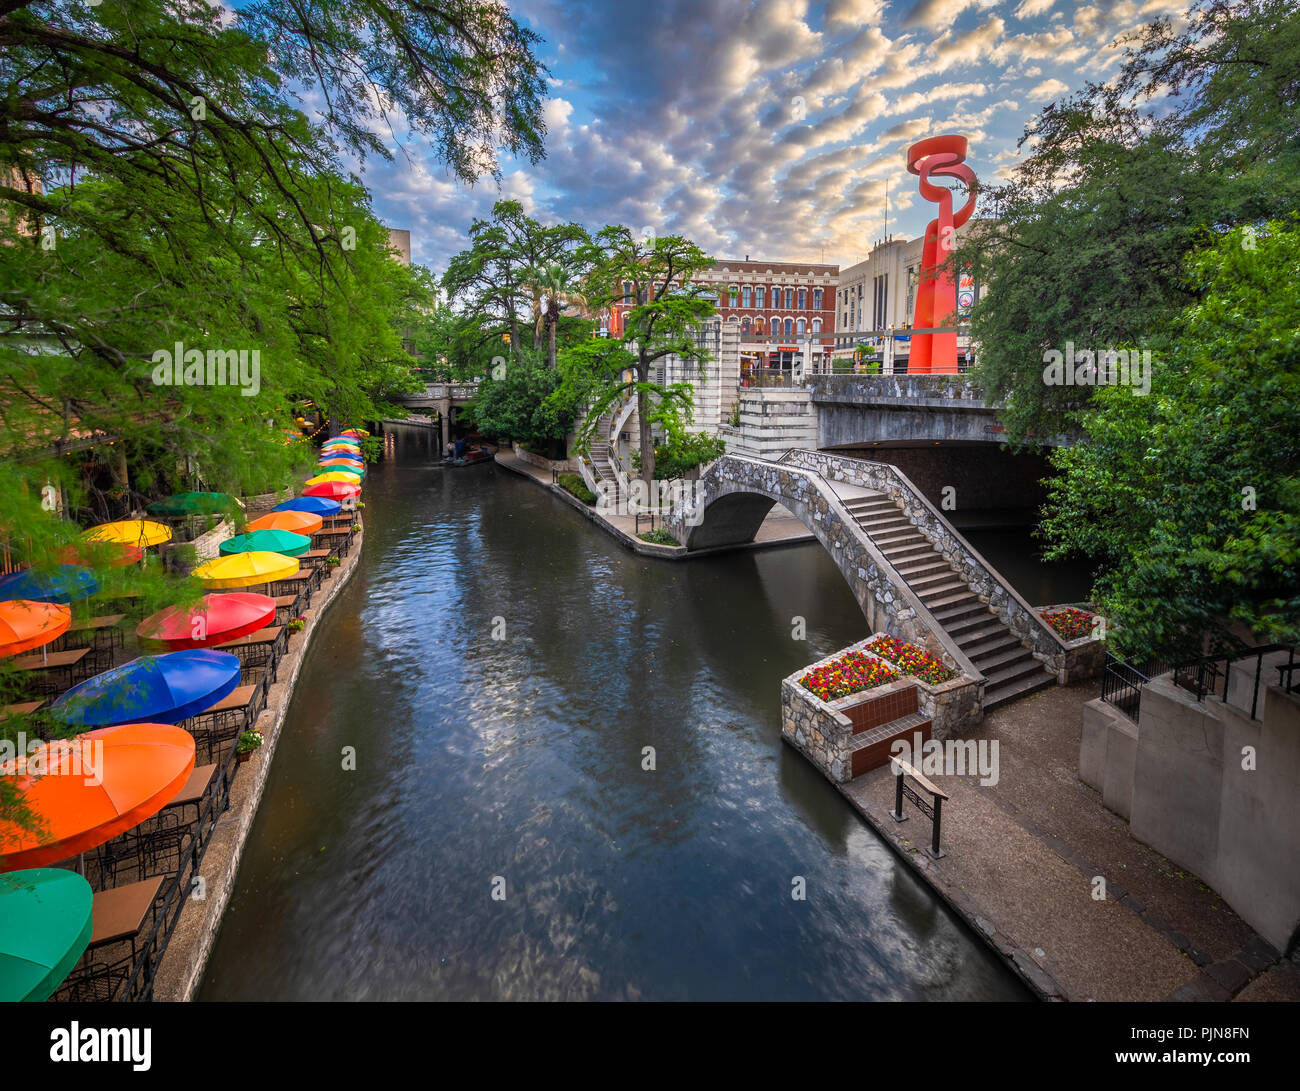 The San Antonio River Walk (also known as Paseo del Río) is a network of walkways along the banks of the San Antonio River. - Stock Image